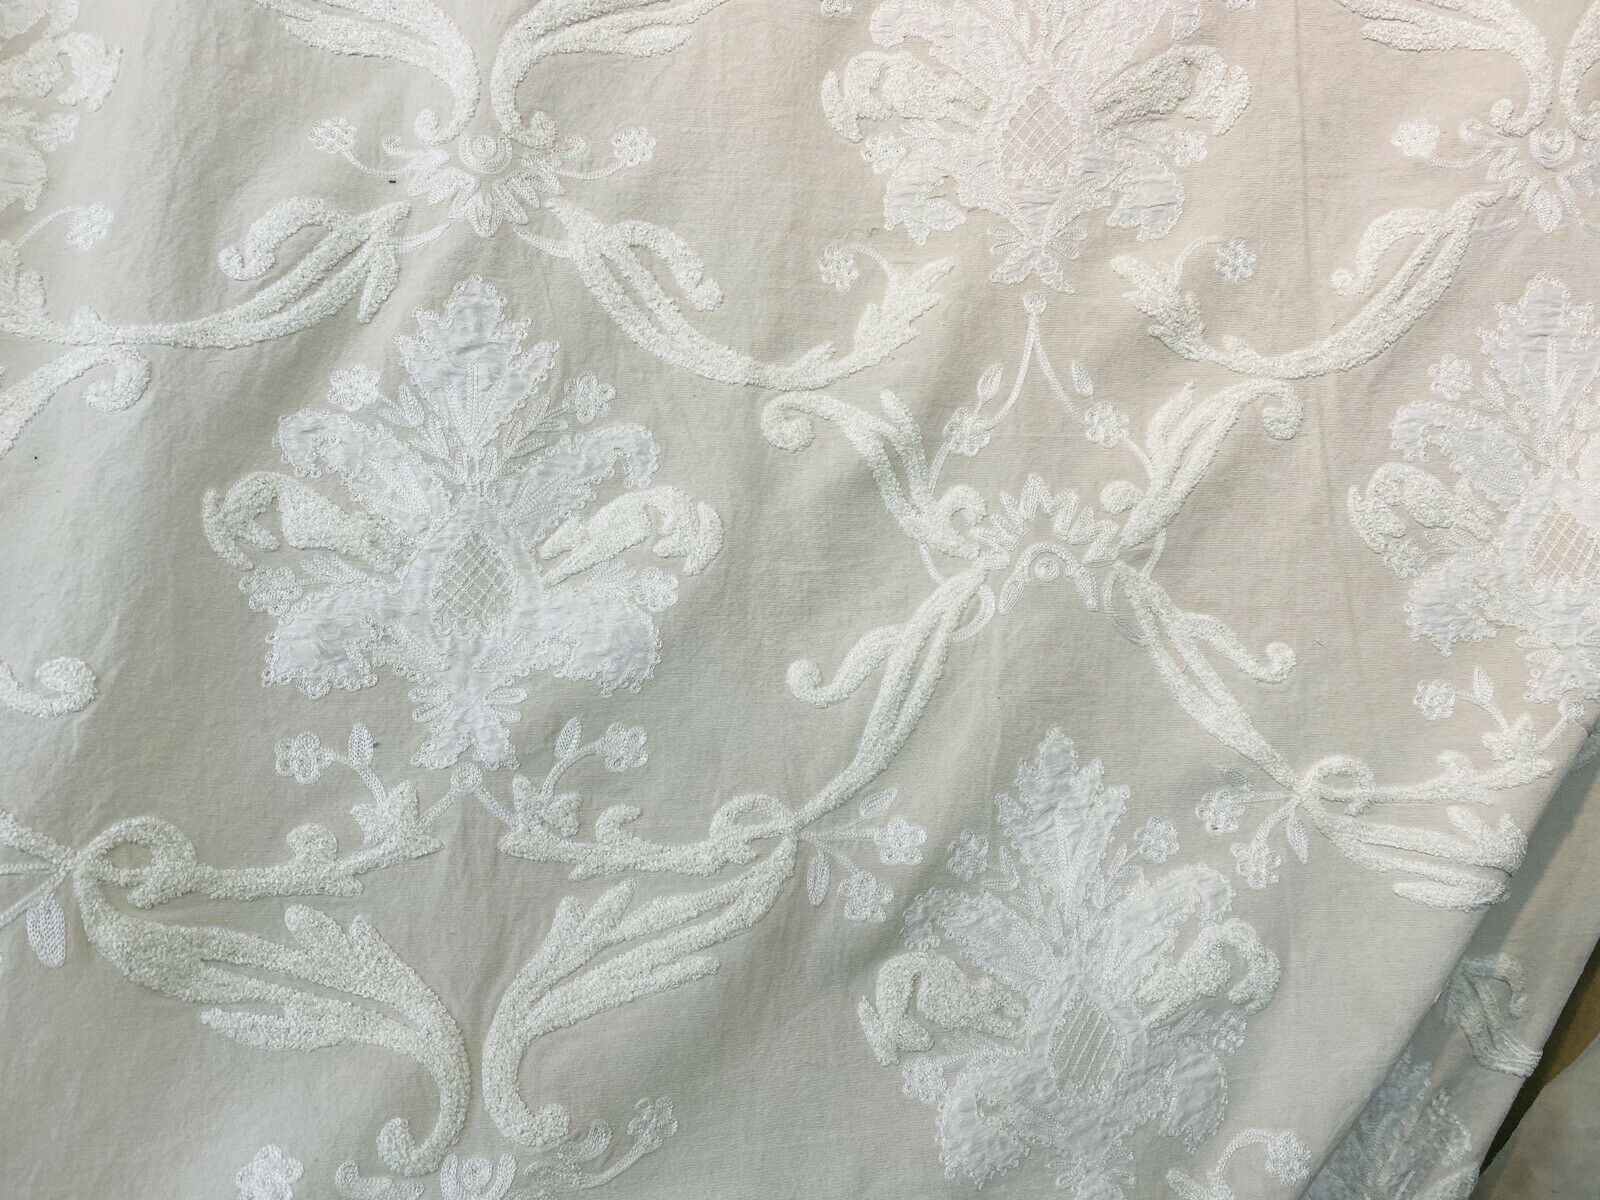 NEW! Novelty 100% Silk Fabric With Crewel Floral Embroidery- Ecru & White